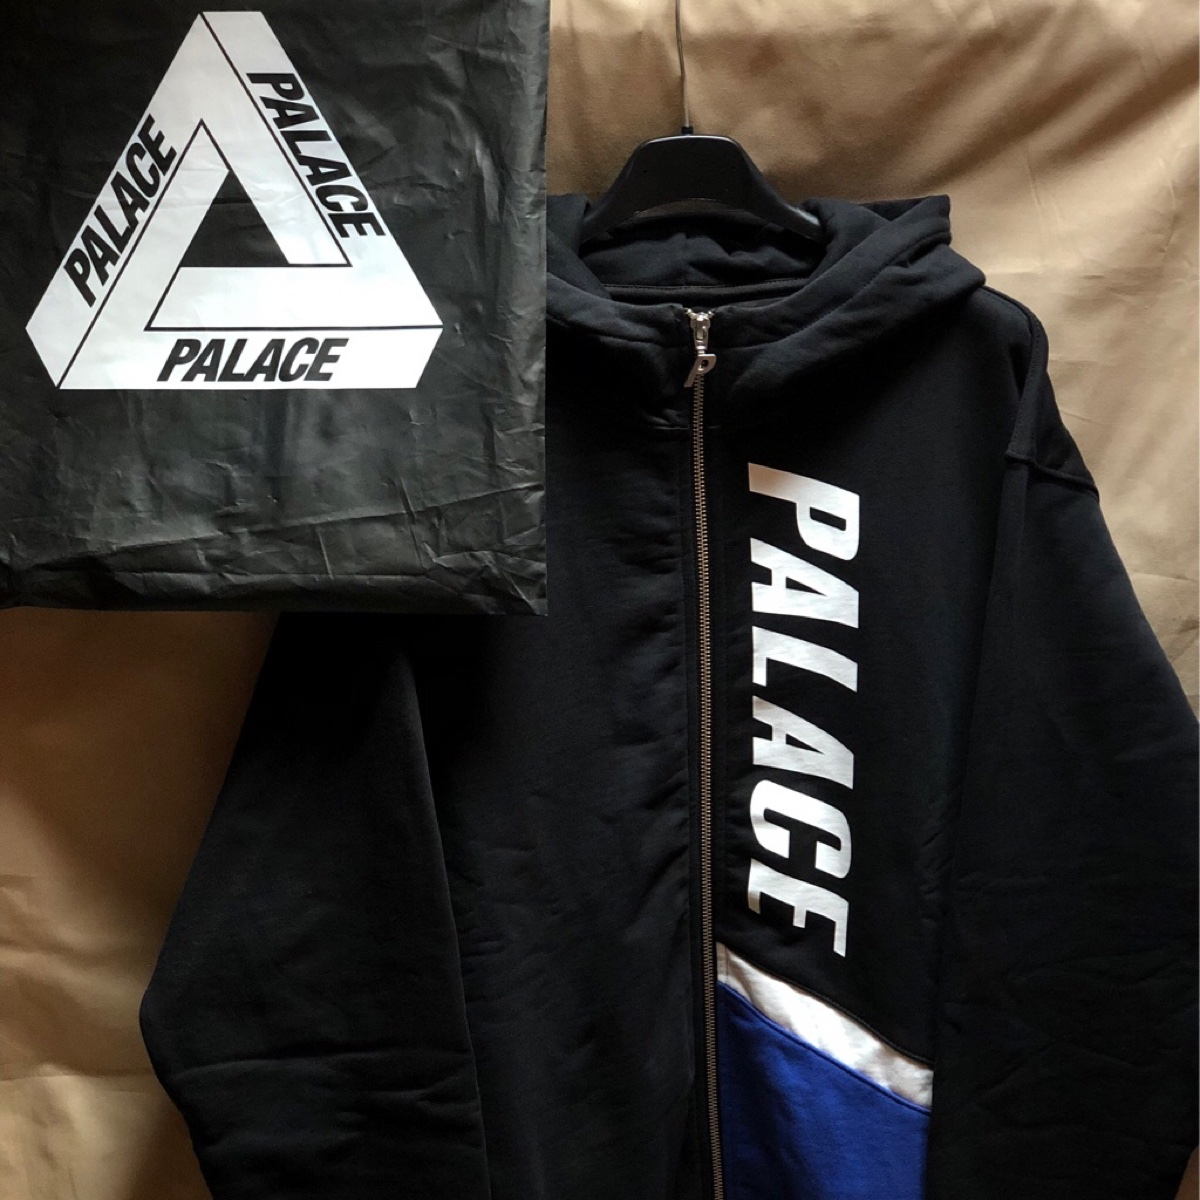 Palace Flaggo Zip Hood Black/White/Blue